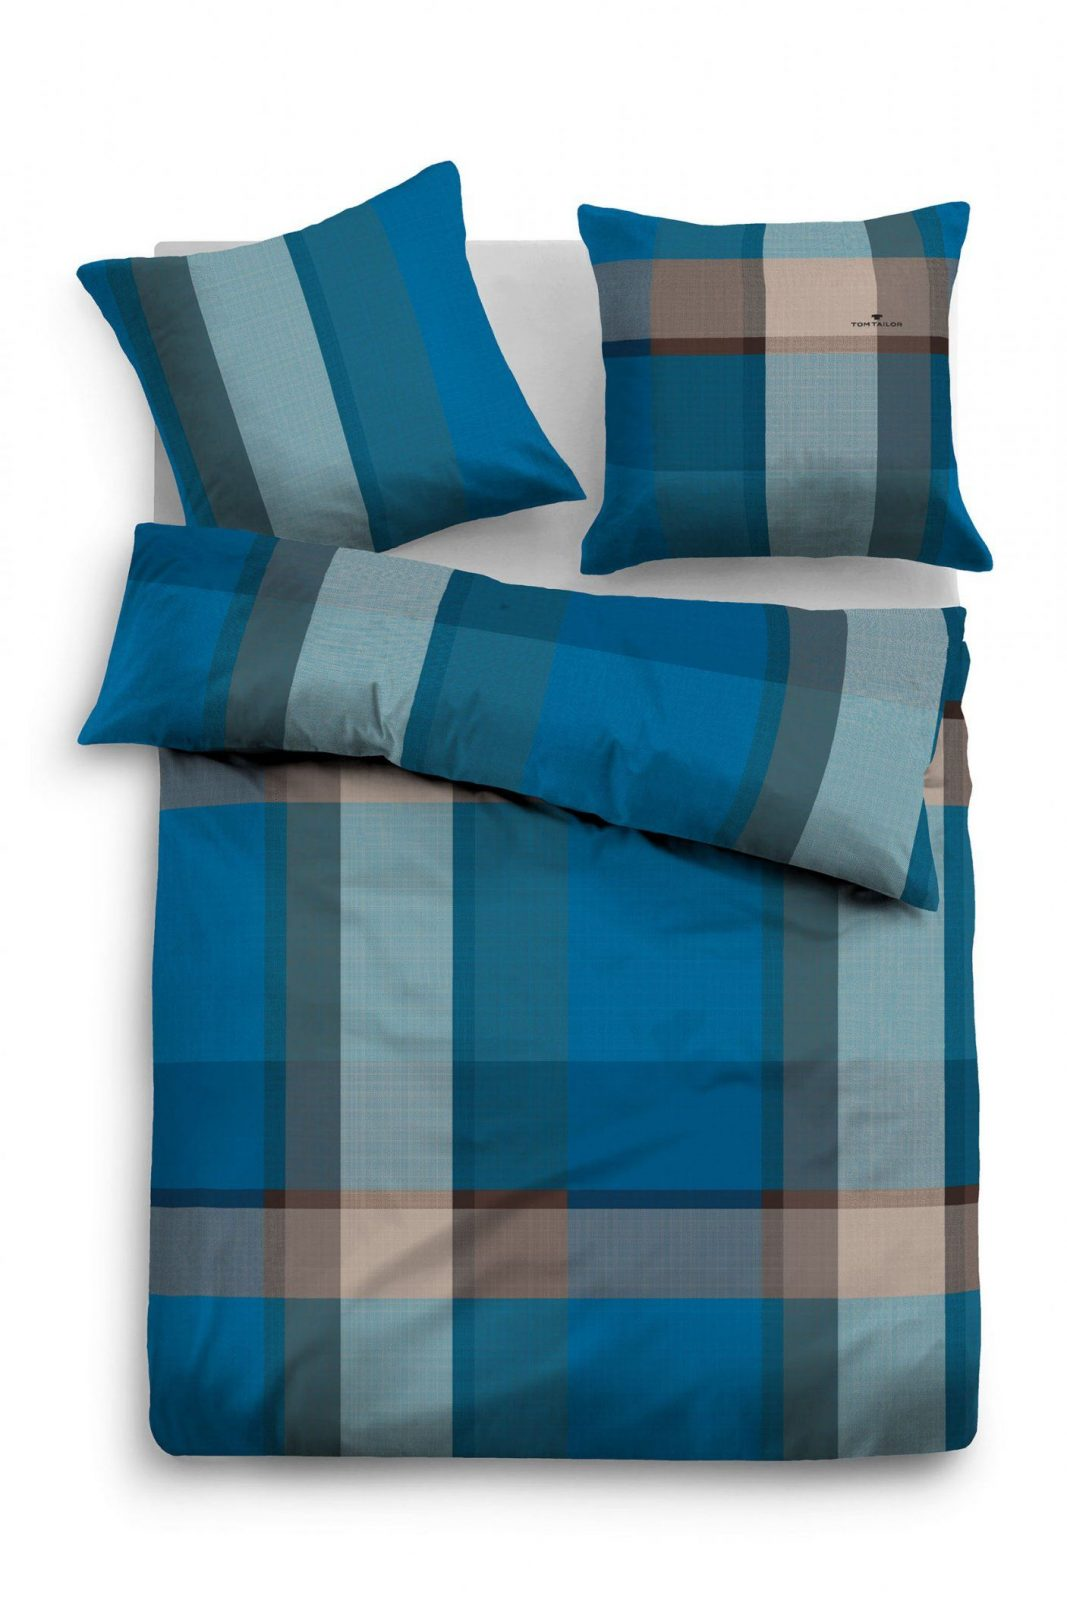 "Tom Tailor Flanell Bettwäsche ""blue Plaid"" Blaugrau  Beauty von Tom Tailor Bettwäsche Biber Bild"